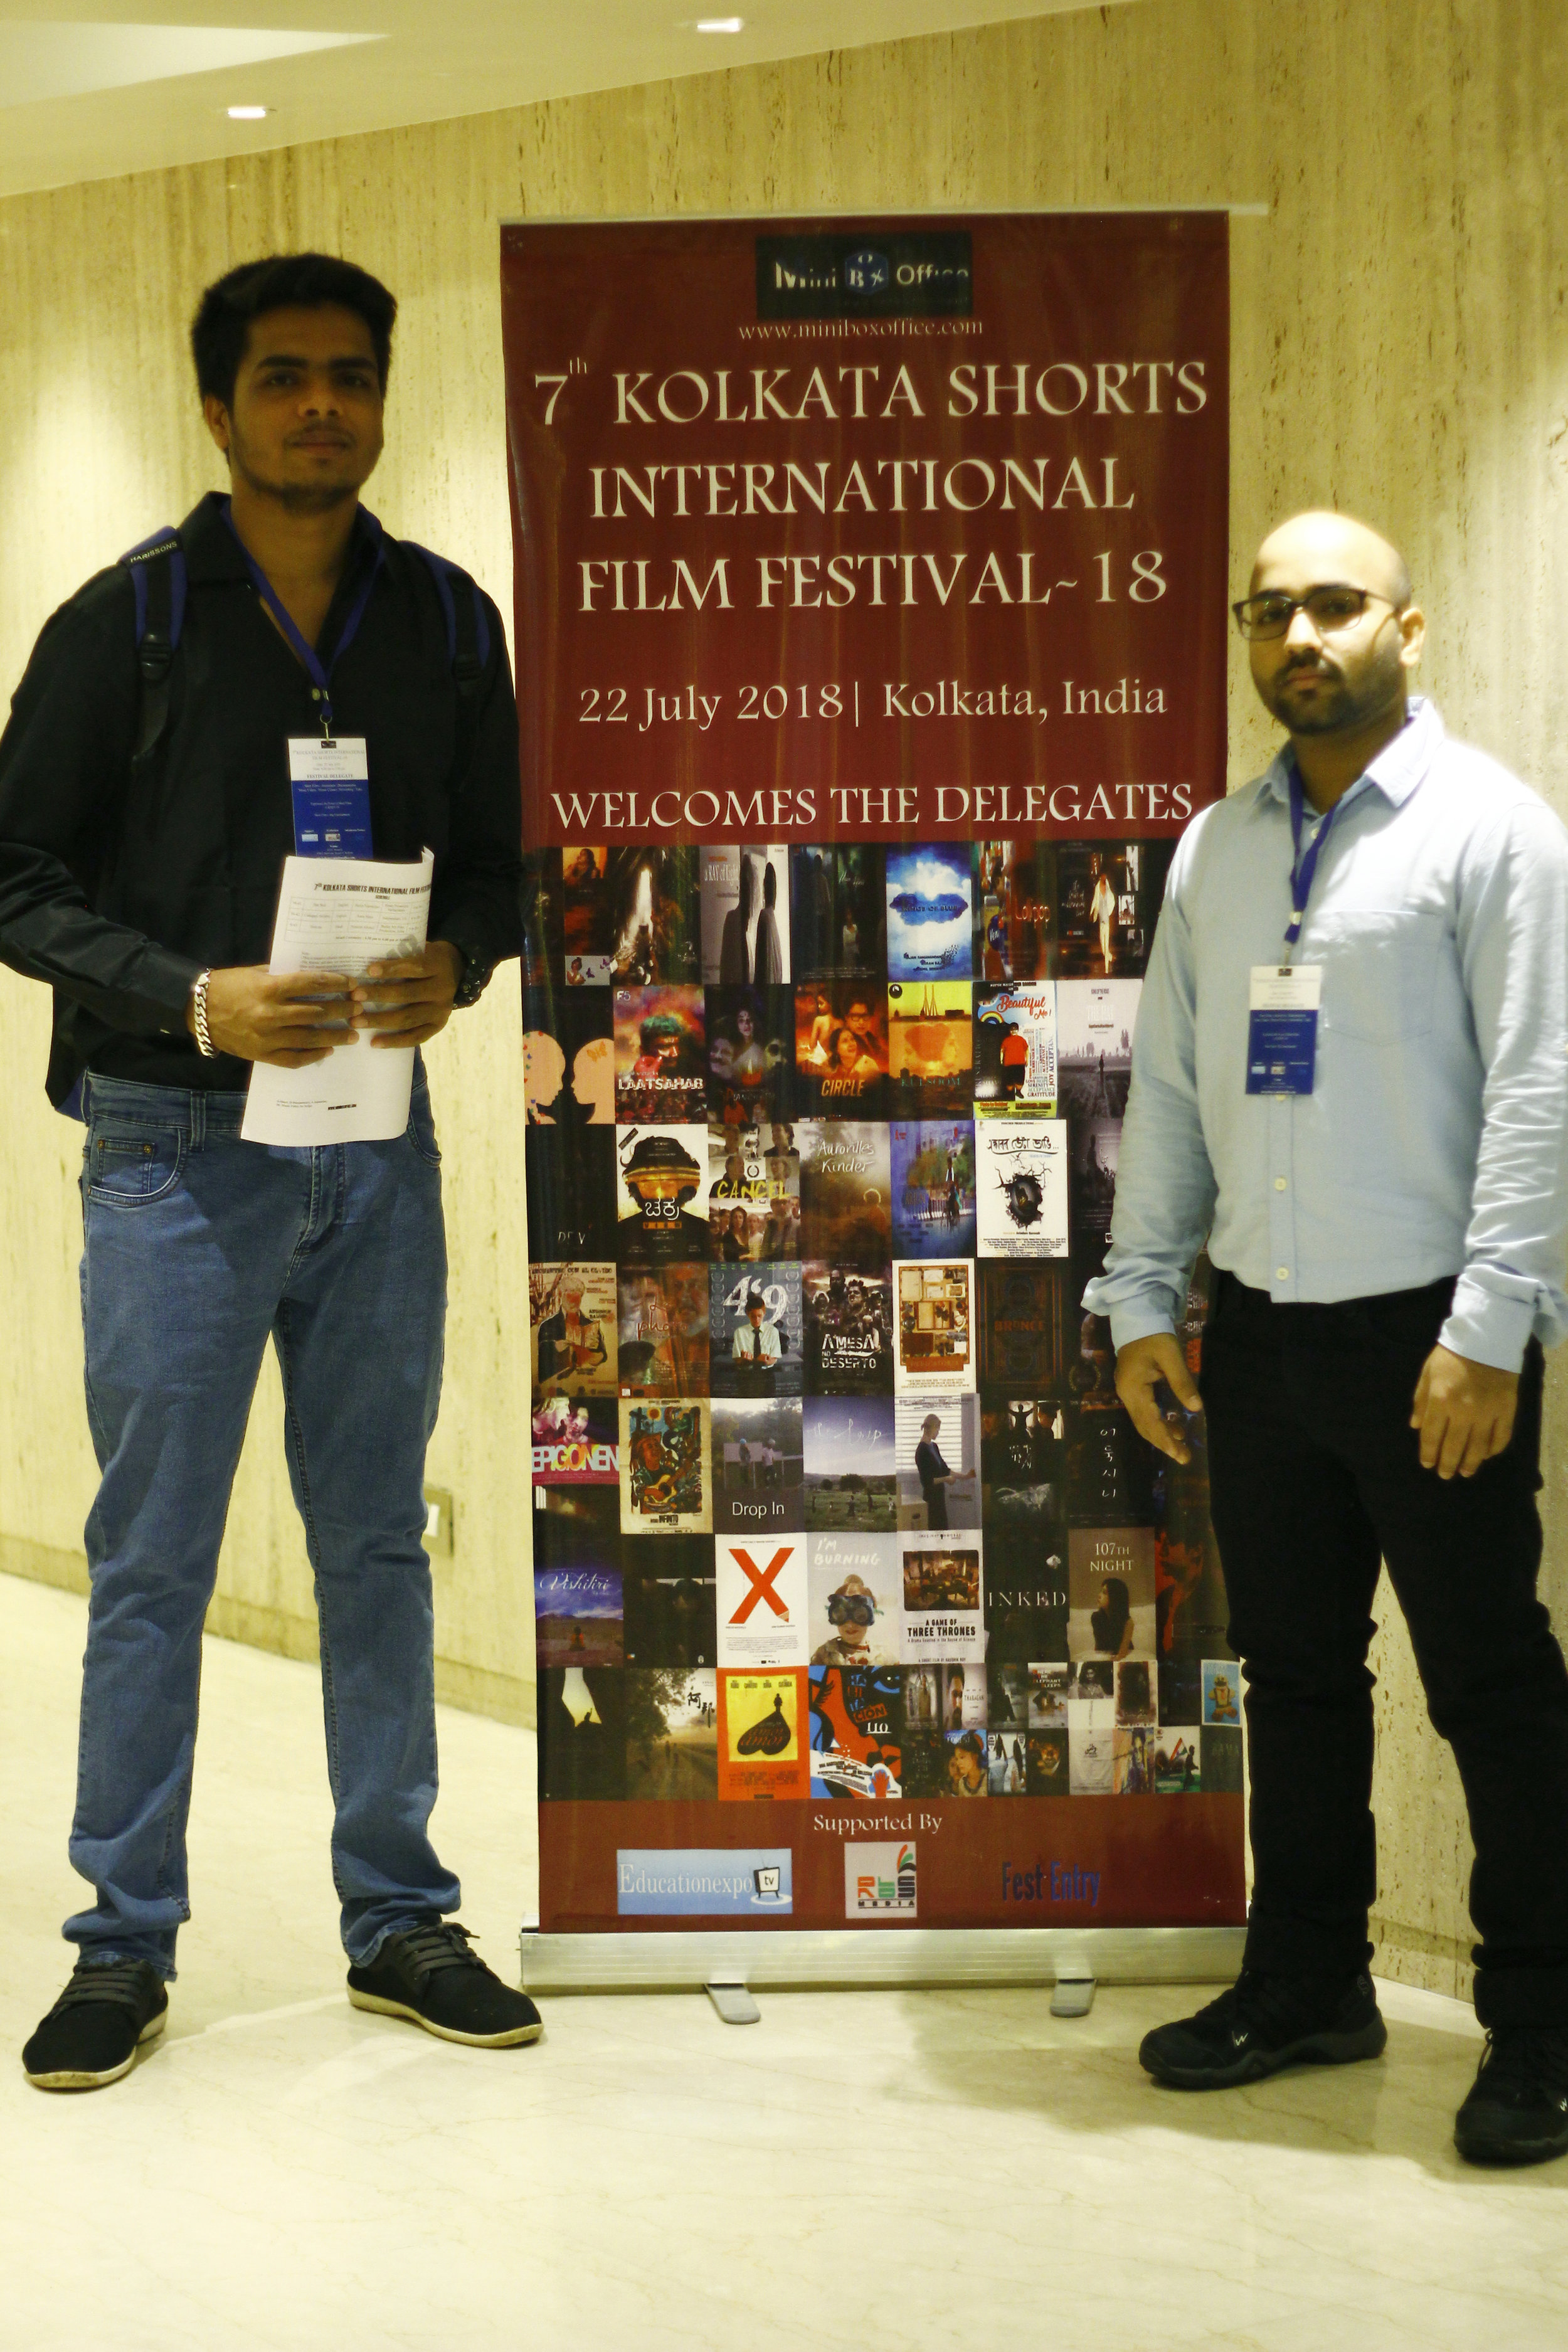 Our Media Executives Rupesh Sahu (left) & Santosh Panigrahi (right) next to the official banner at the festival.